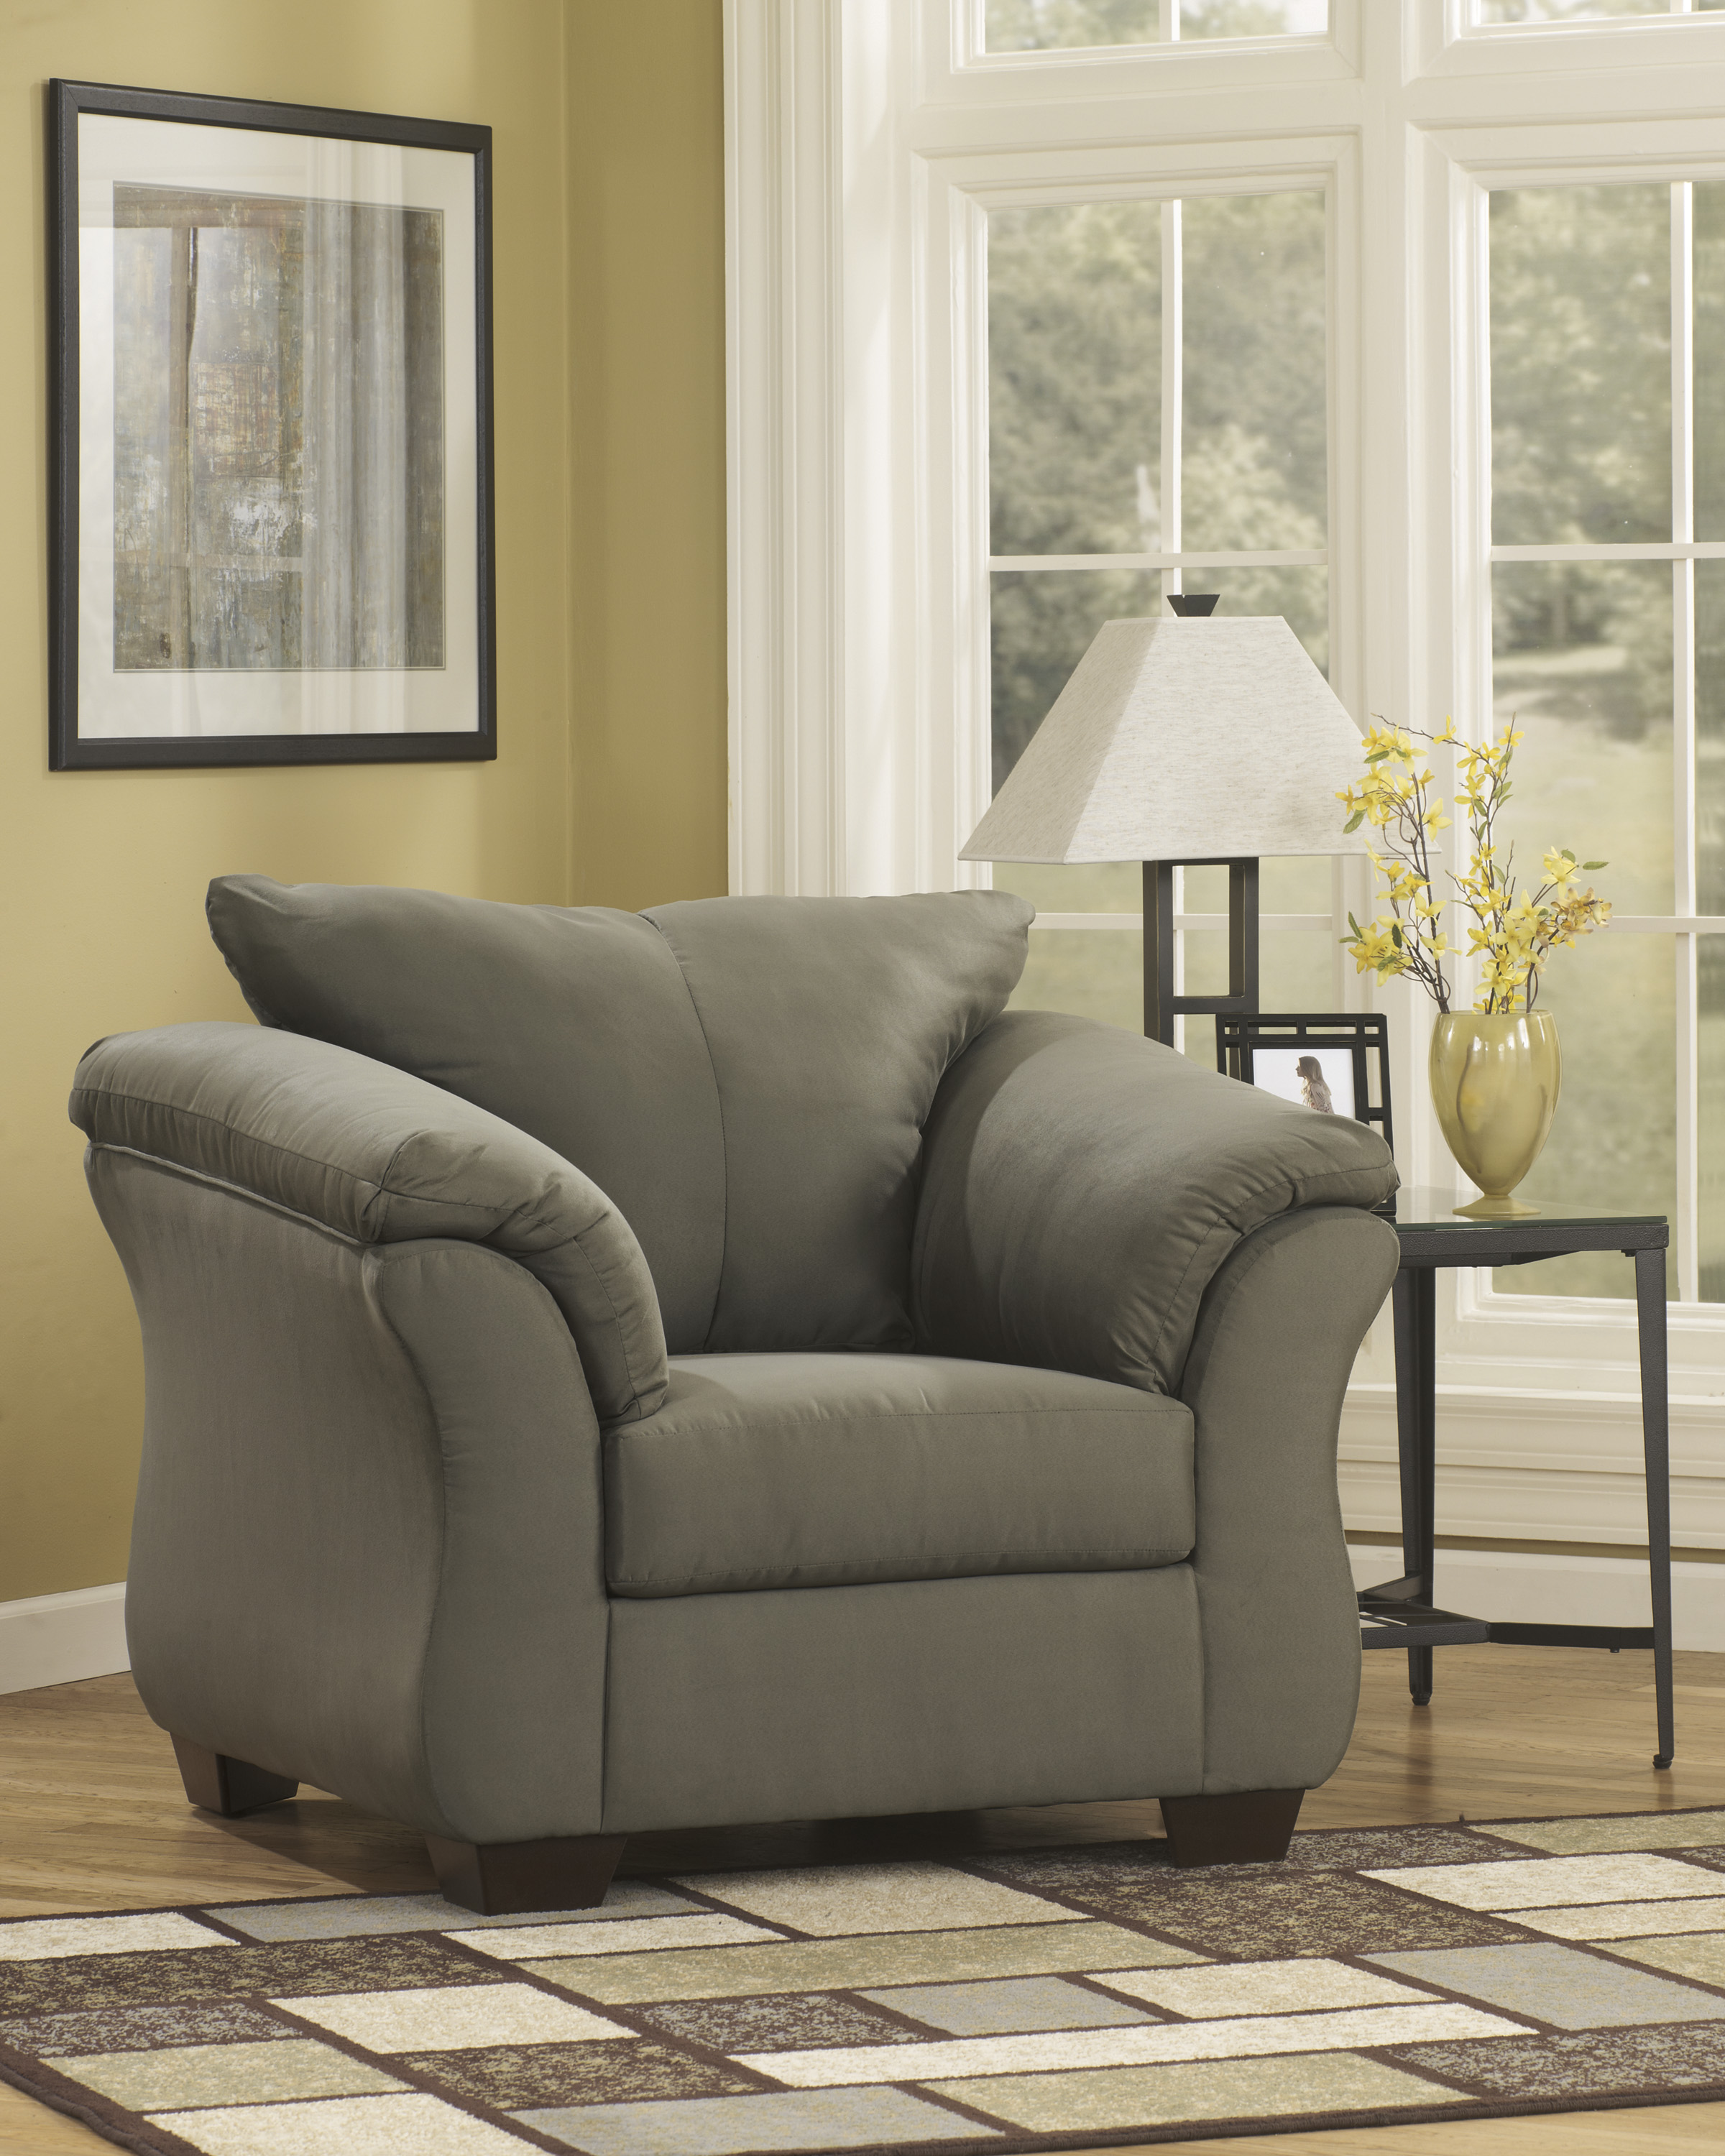 Darcy Sage Stationary Chair  / $12.99 A Week